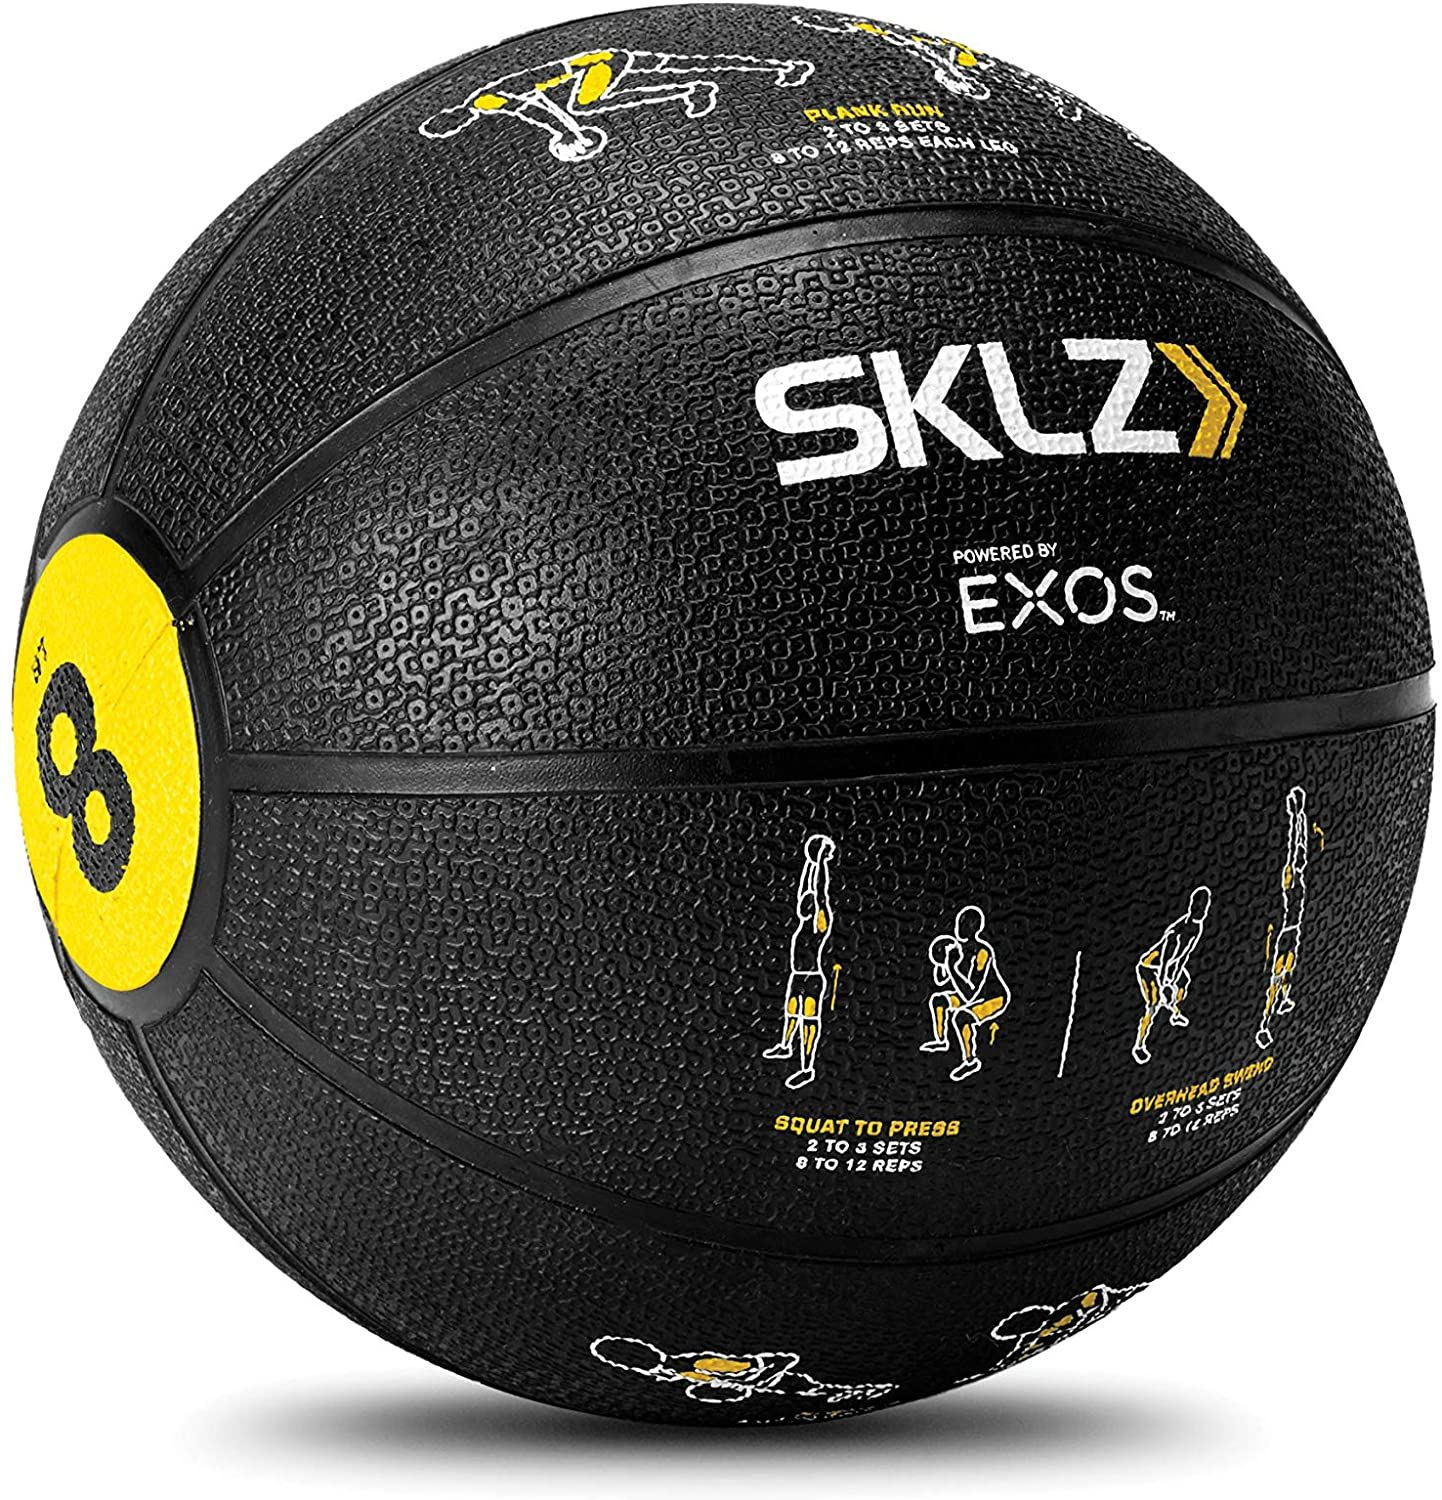 Sklz Trainer 8 Pound Medicine Ball With Self Guided Exercise Illustrations In 2020 Medicine Ball Medicine Balls Ball Exercises